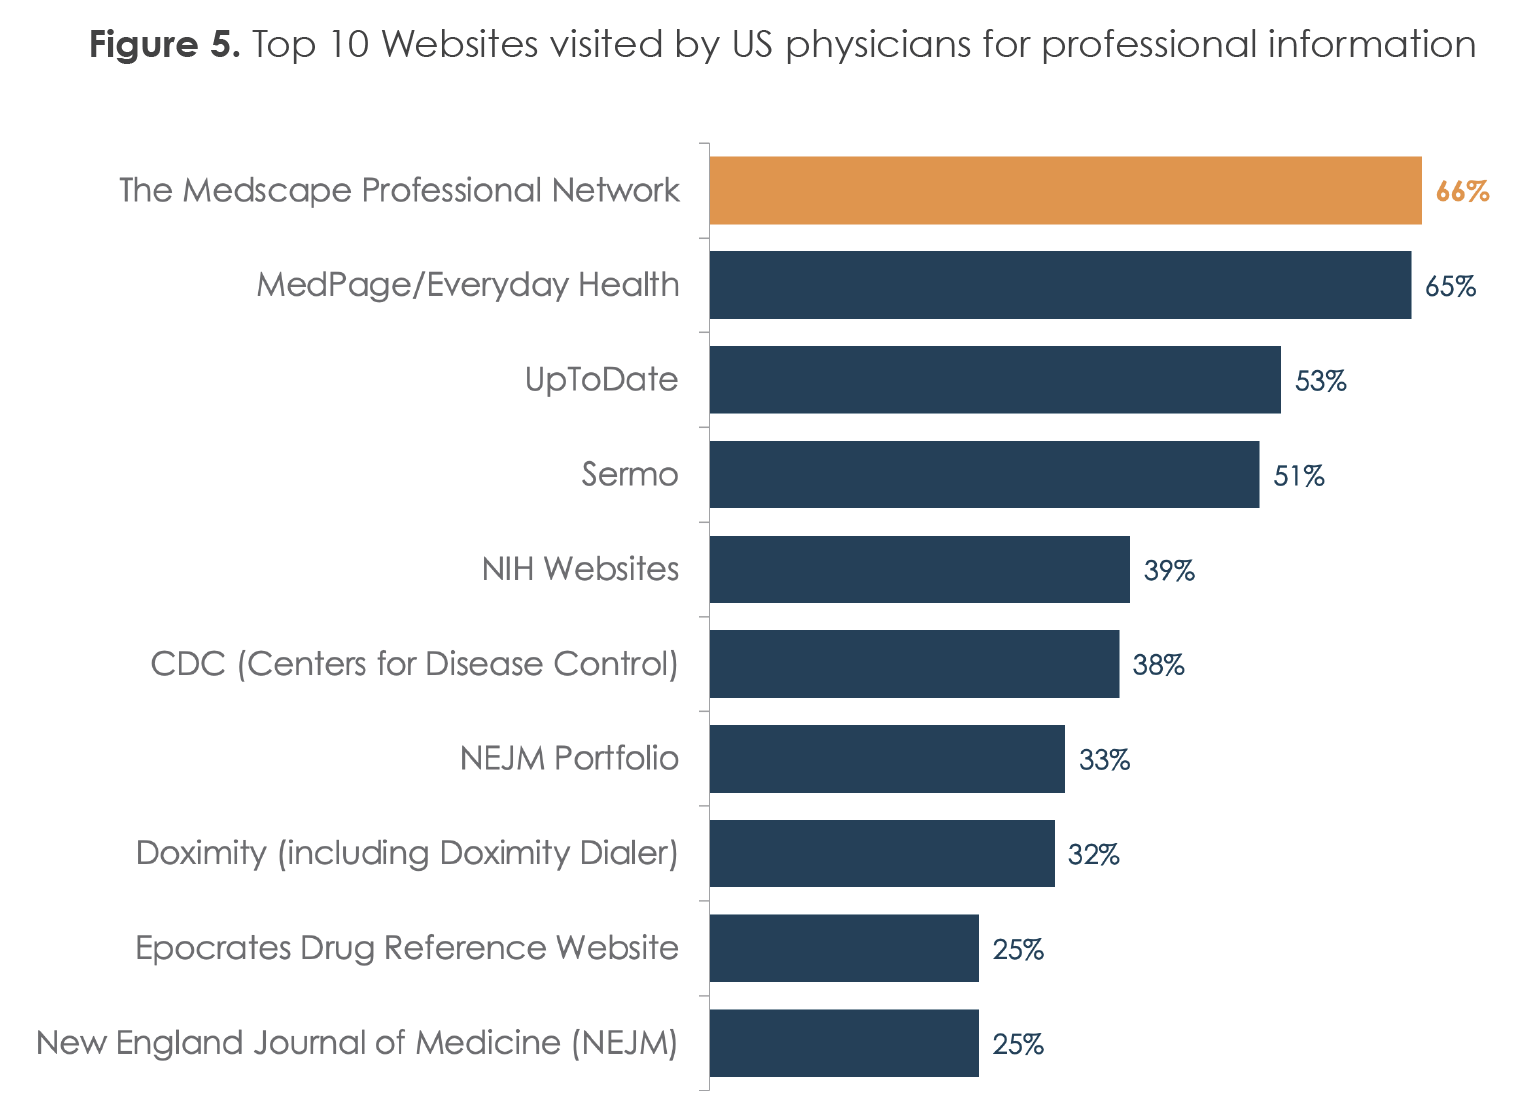 Figure 5. Top 10 Websites visited by US physicians for professional information